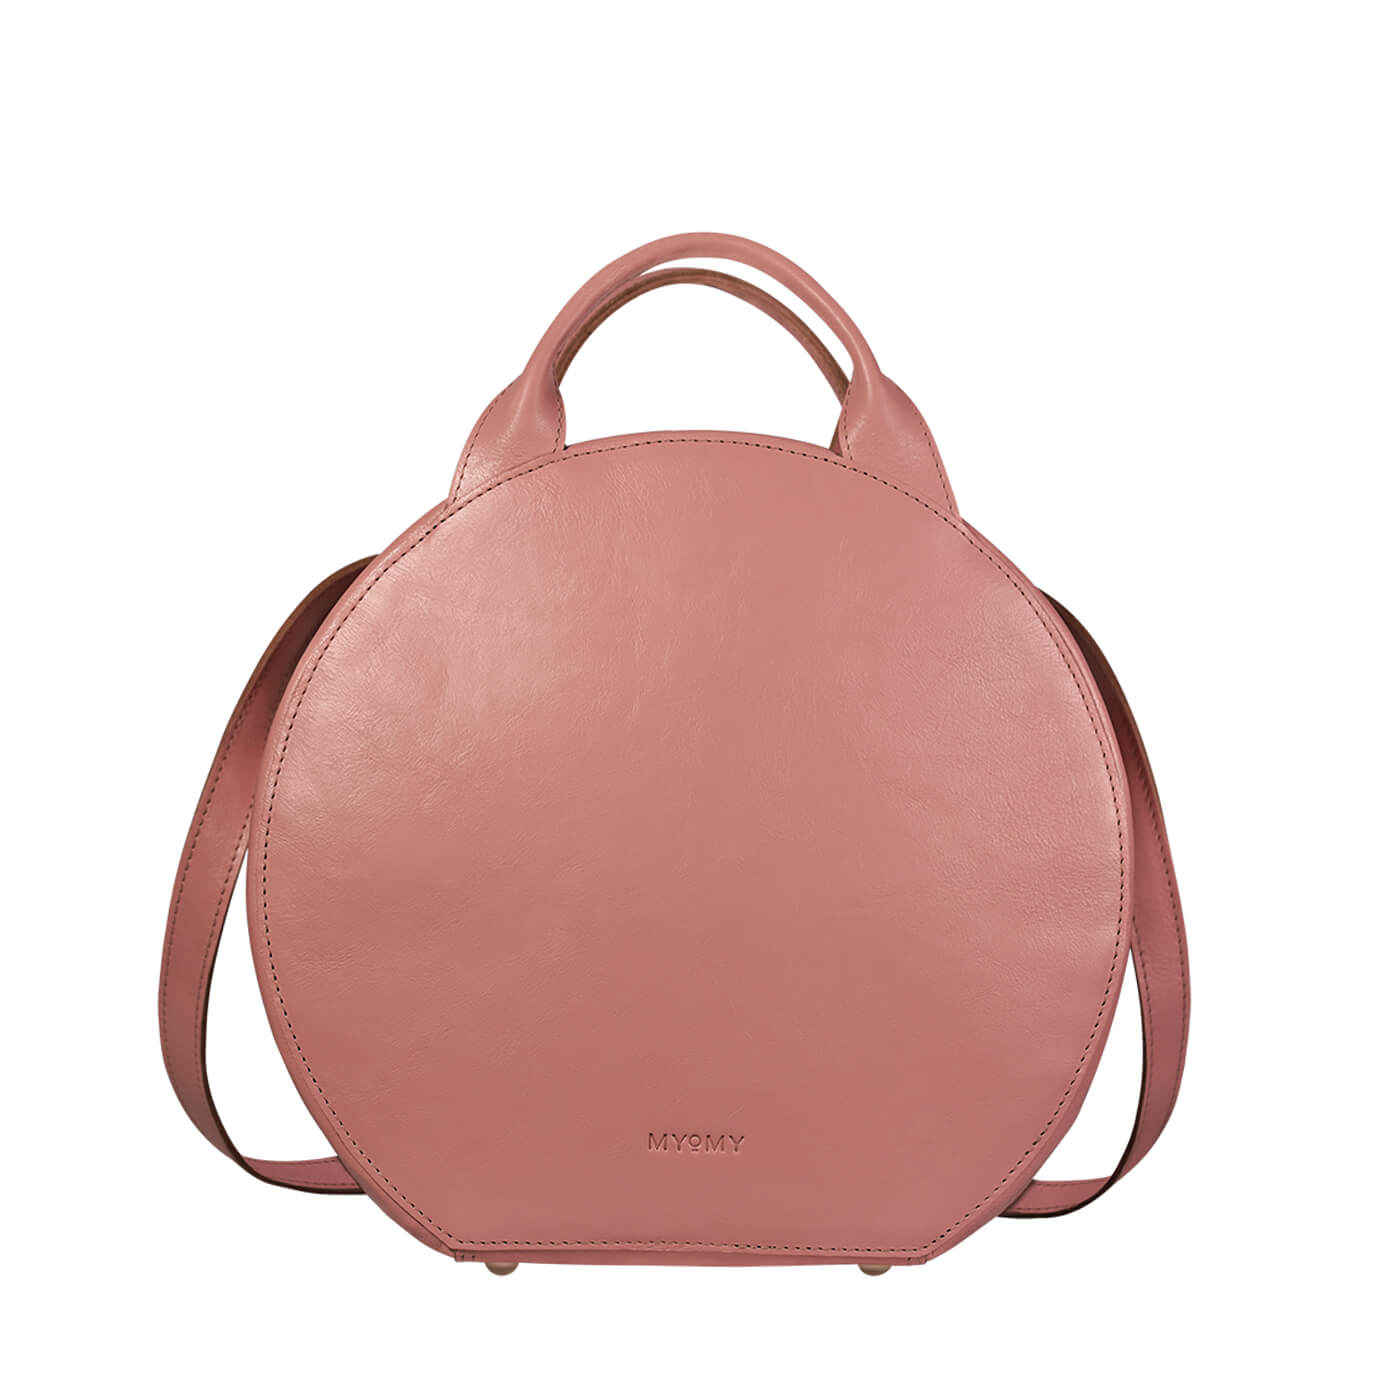 MY BOXY BAG Cookie backbag - hunter waxy pink